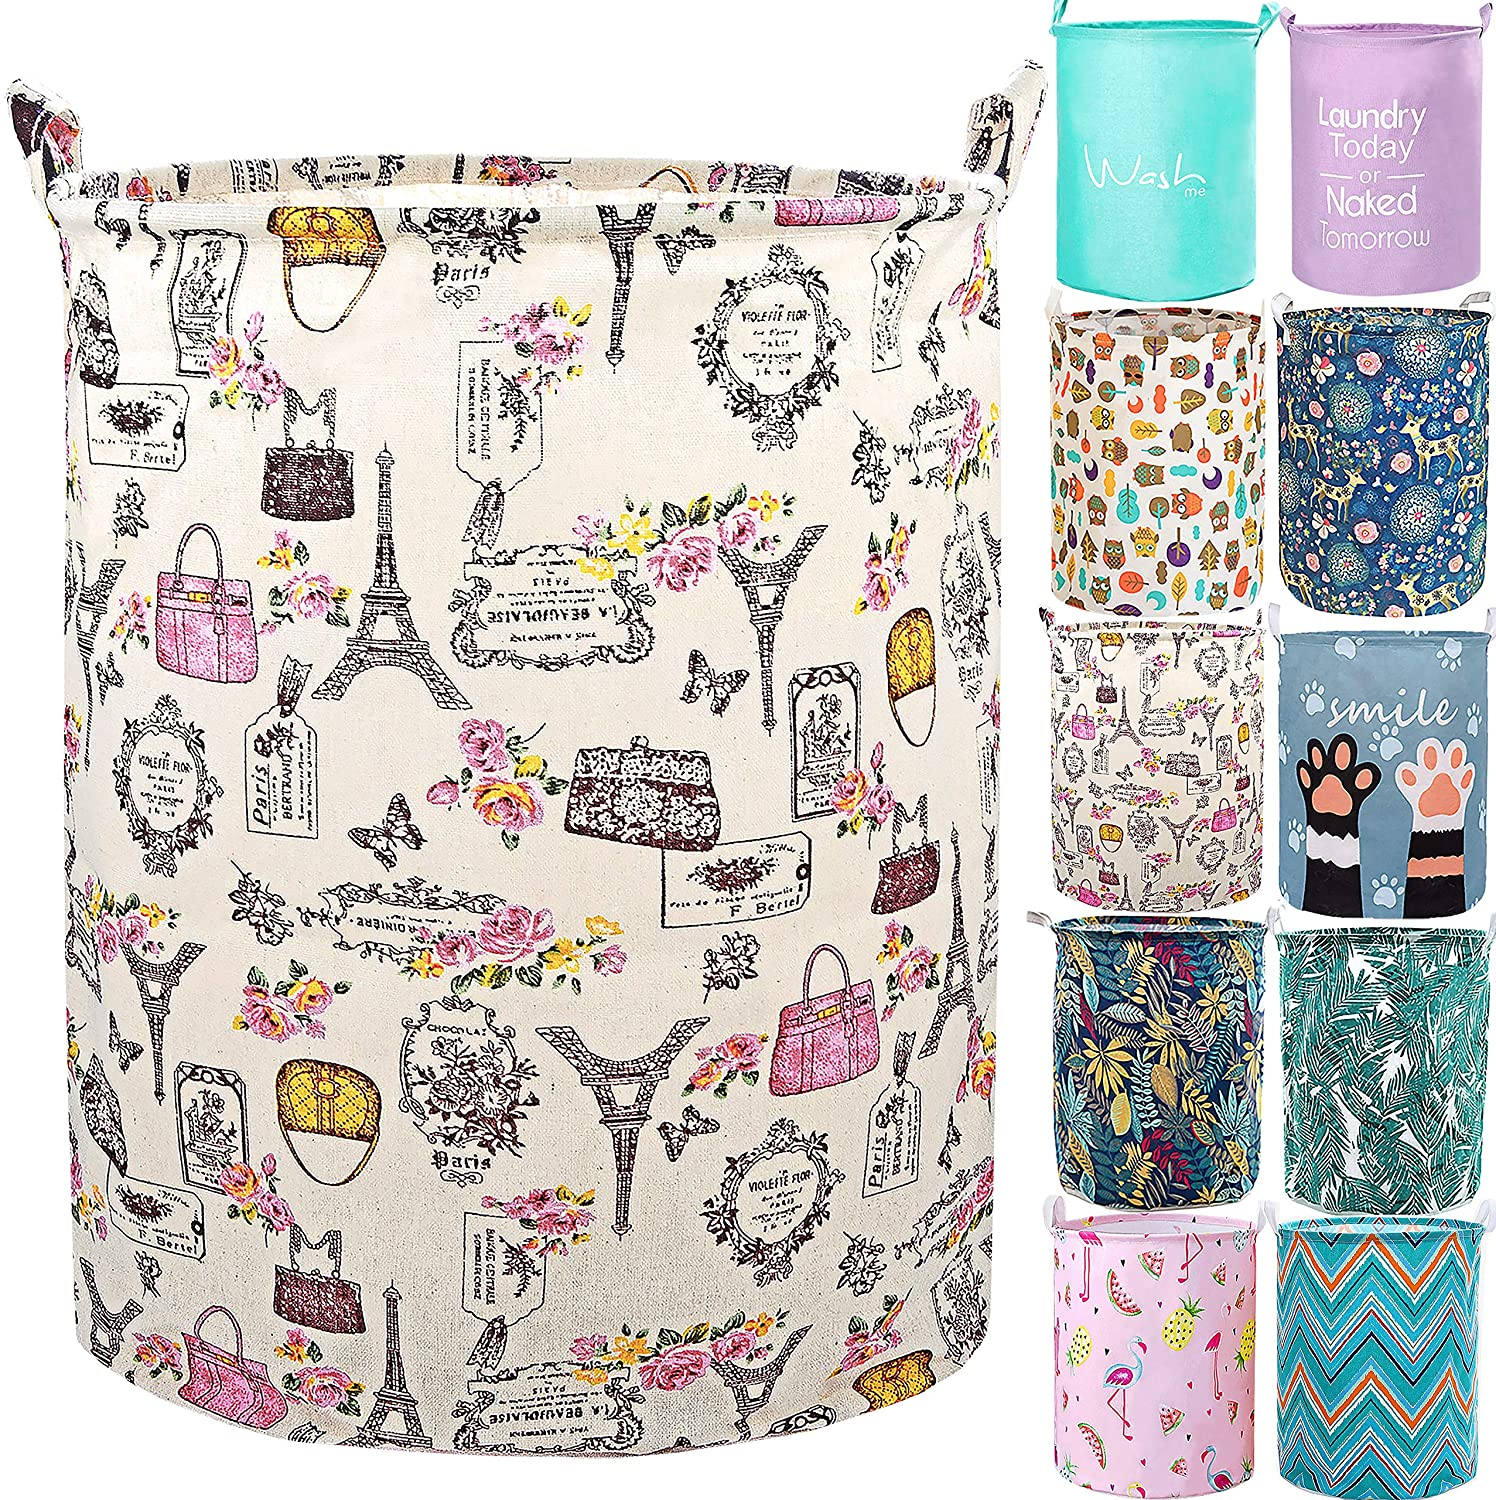 """YOMFUN Foldable Laundry Basket for Girls Laundry Hamper for Kids Room,Vintage Dirty Clothes Laundry Basket 19.7"""" Waterproof Toy Organizer Paris Decor for Bedroom,Adults (Paris,L)"""